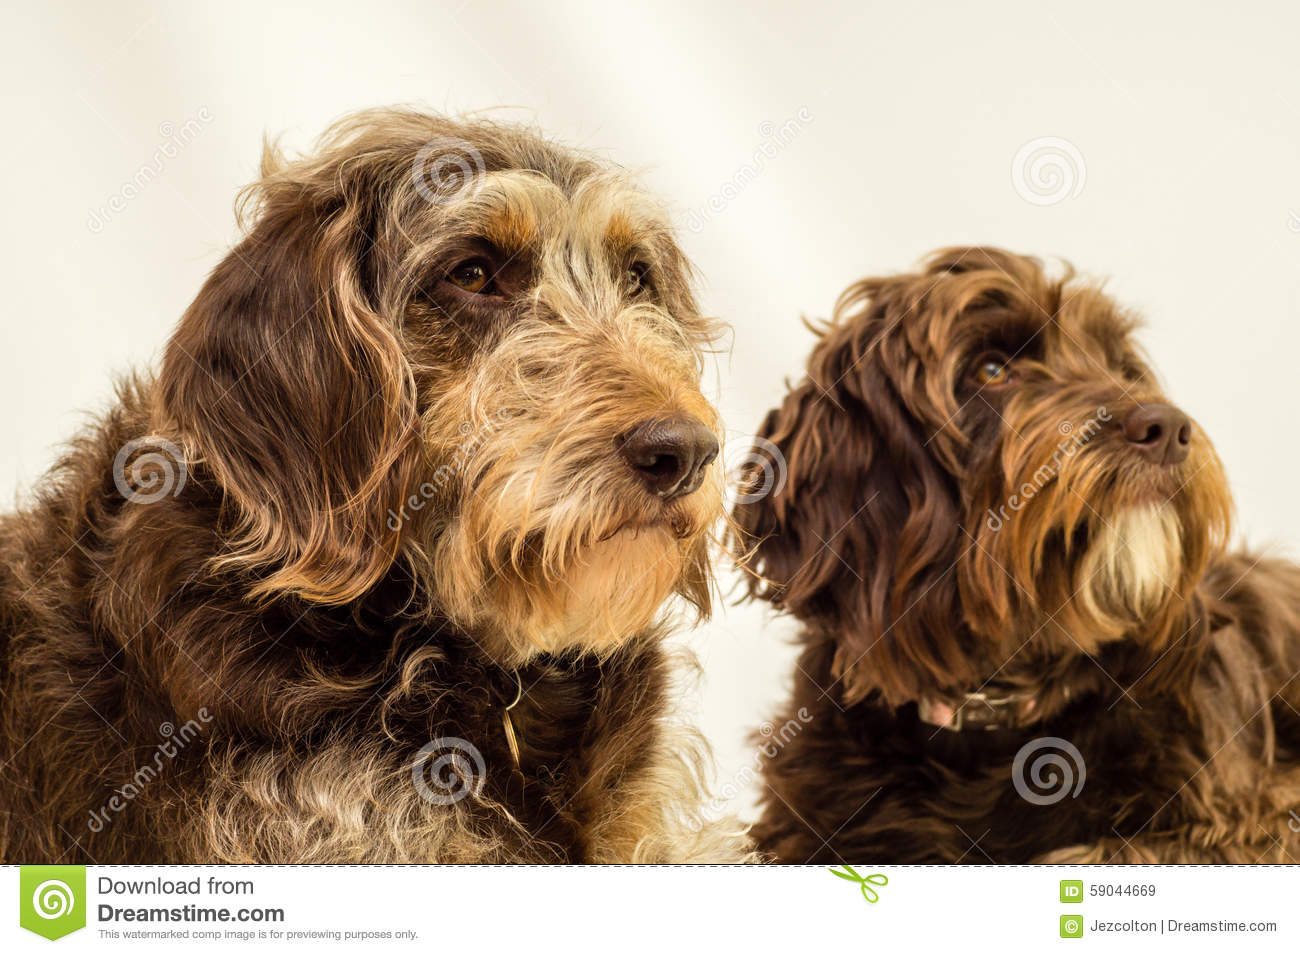 Mixed breed dogs against a white background.